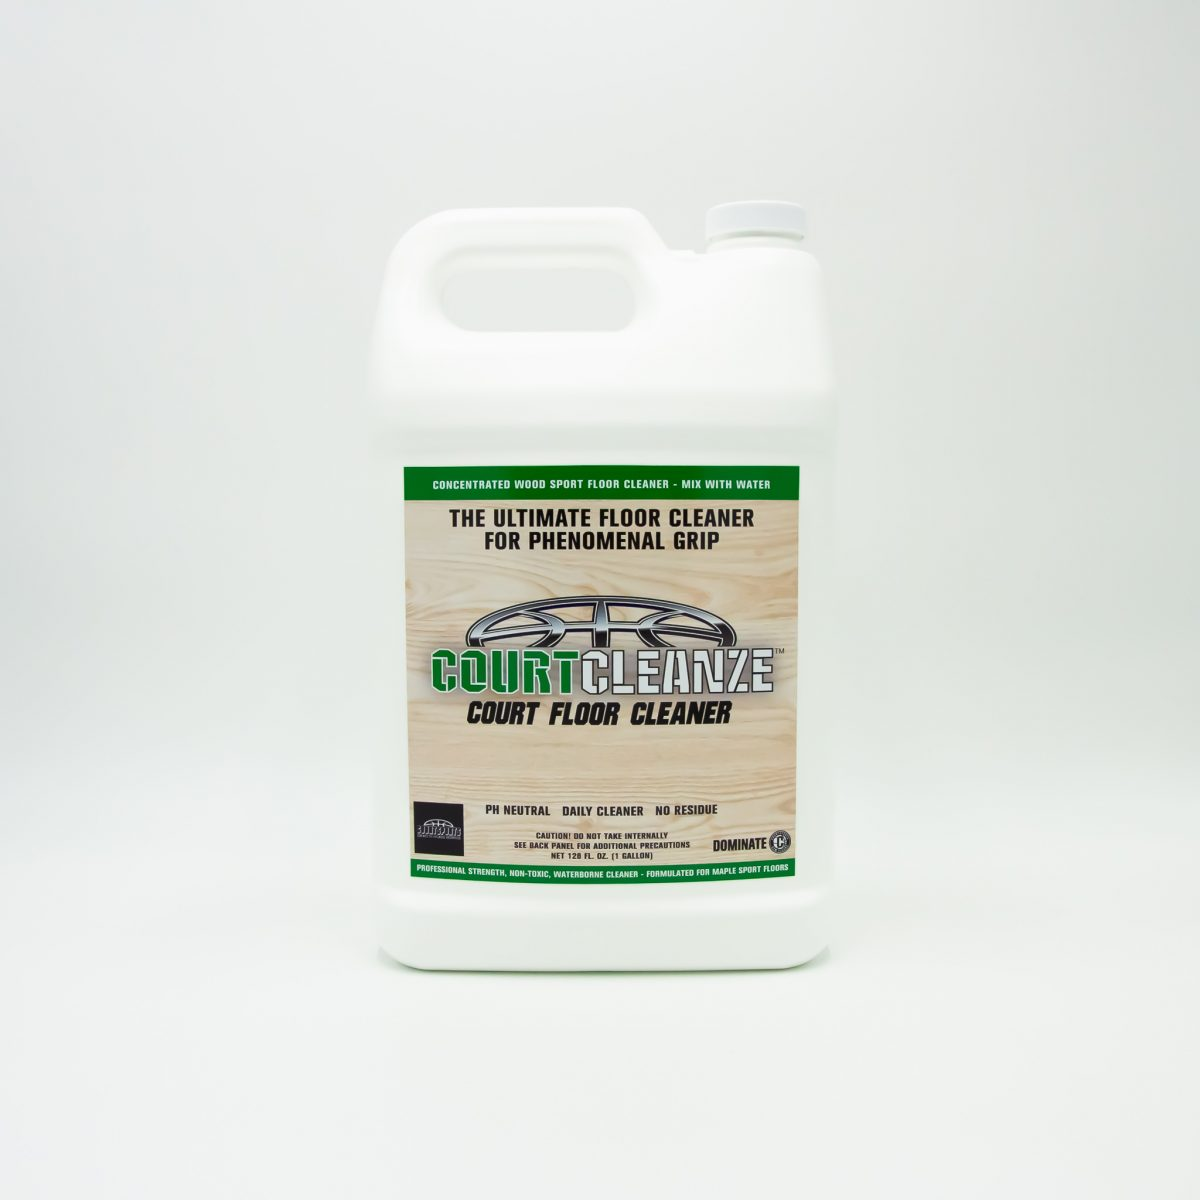 CONCENTRATED WOOD FLOOR CLEANER FOR BASKETBALL COURTS, GROUP X STUDIOS, RACQUETBALL, AND DANCE HALLS